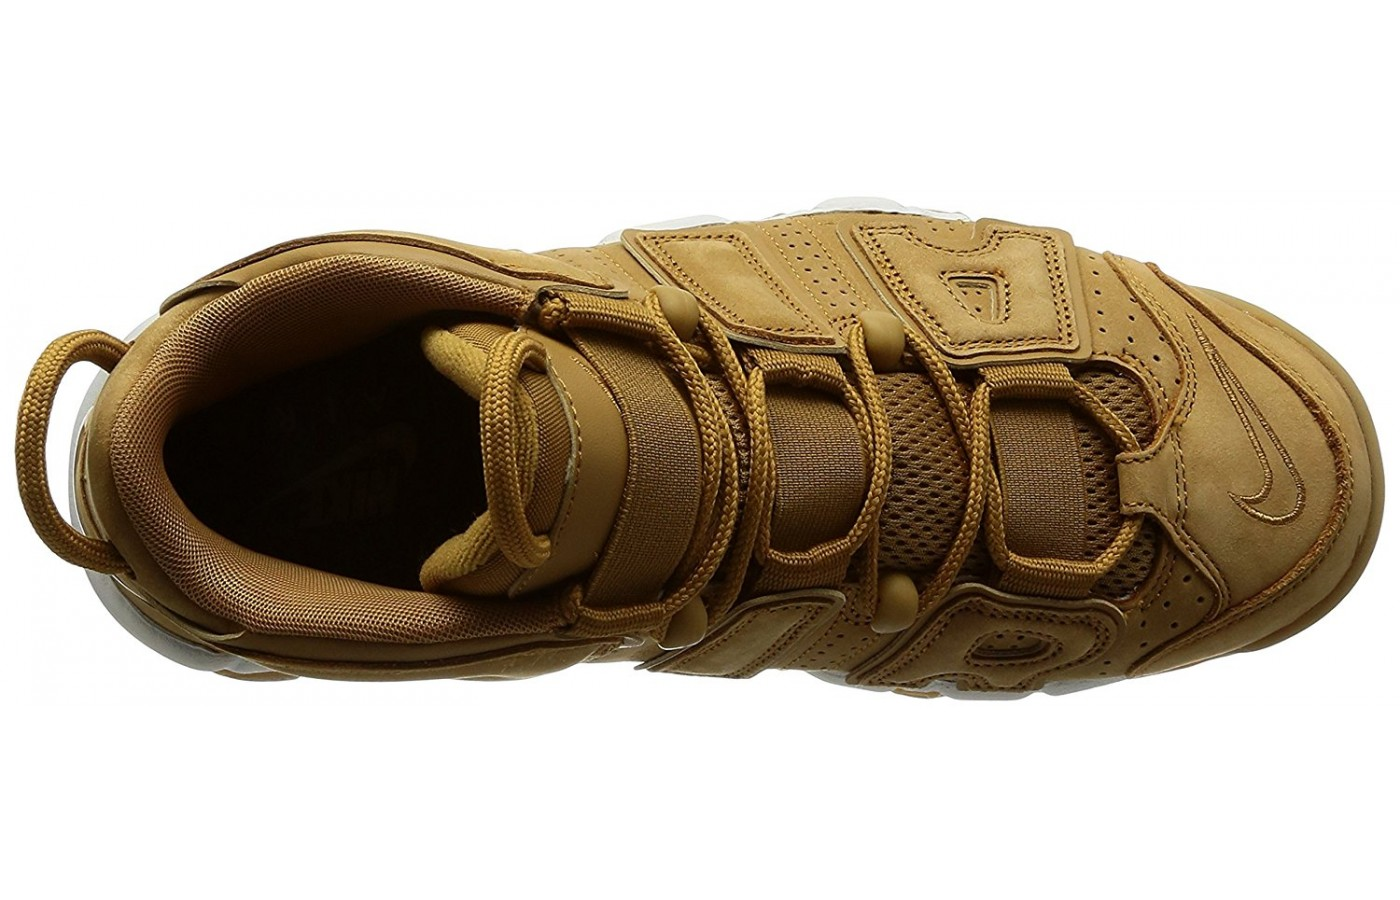 Top of Nike Air More Uptempo